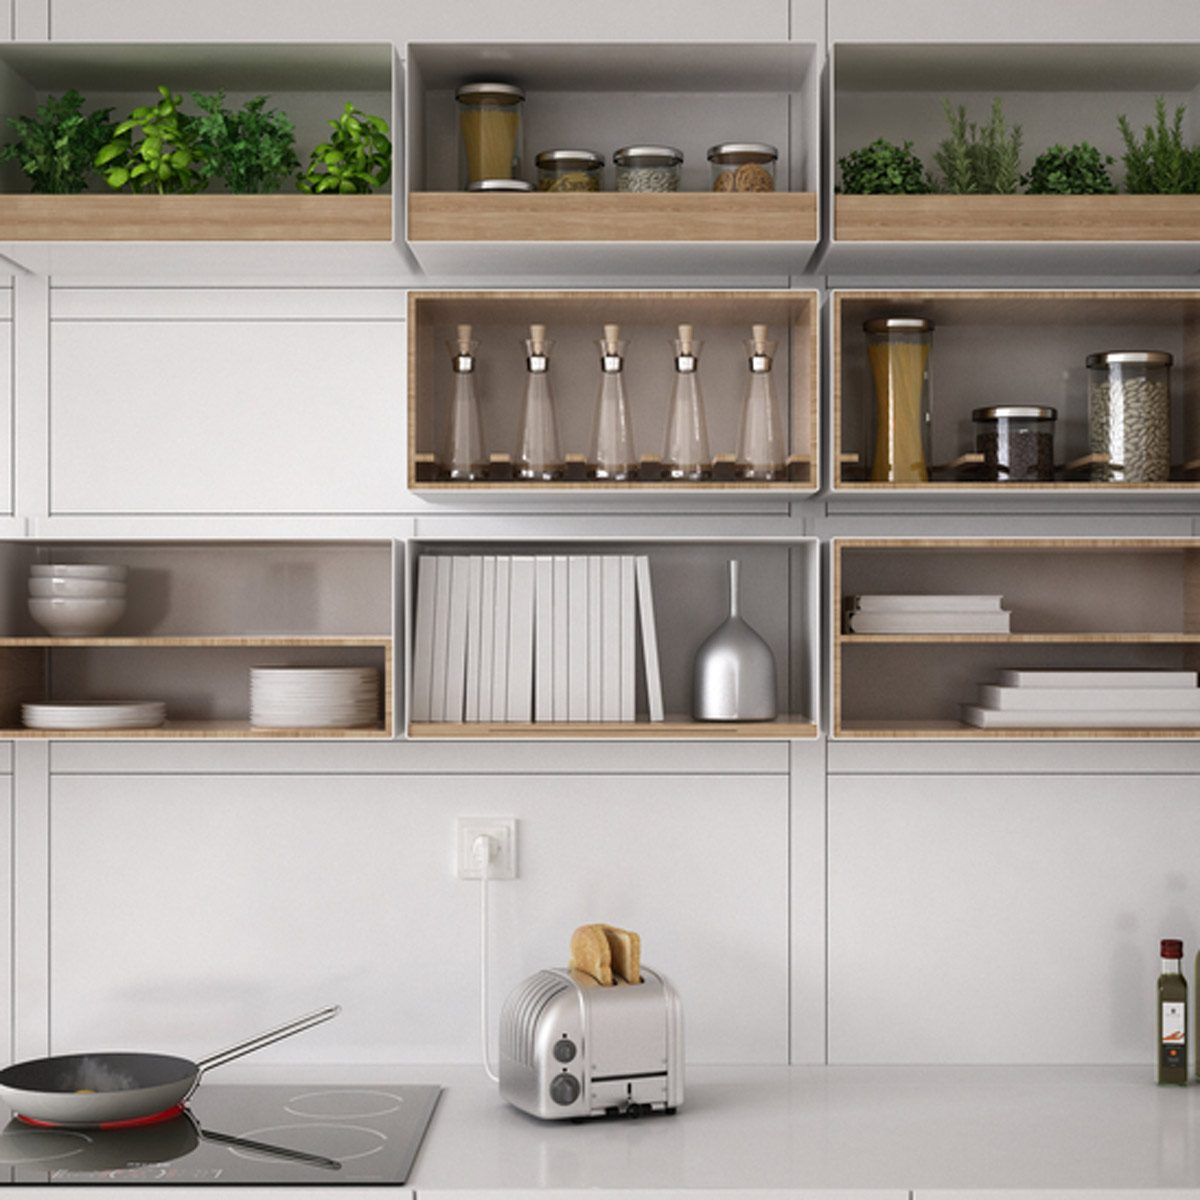 shutterstock_530497795 kitchen open shelving organization